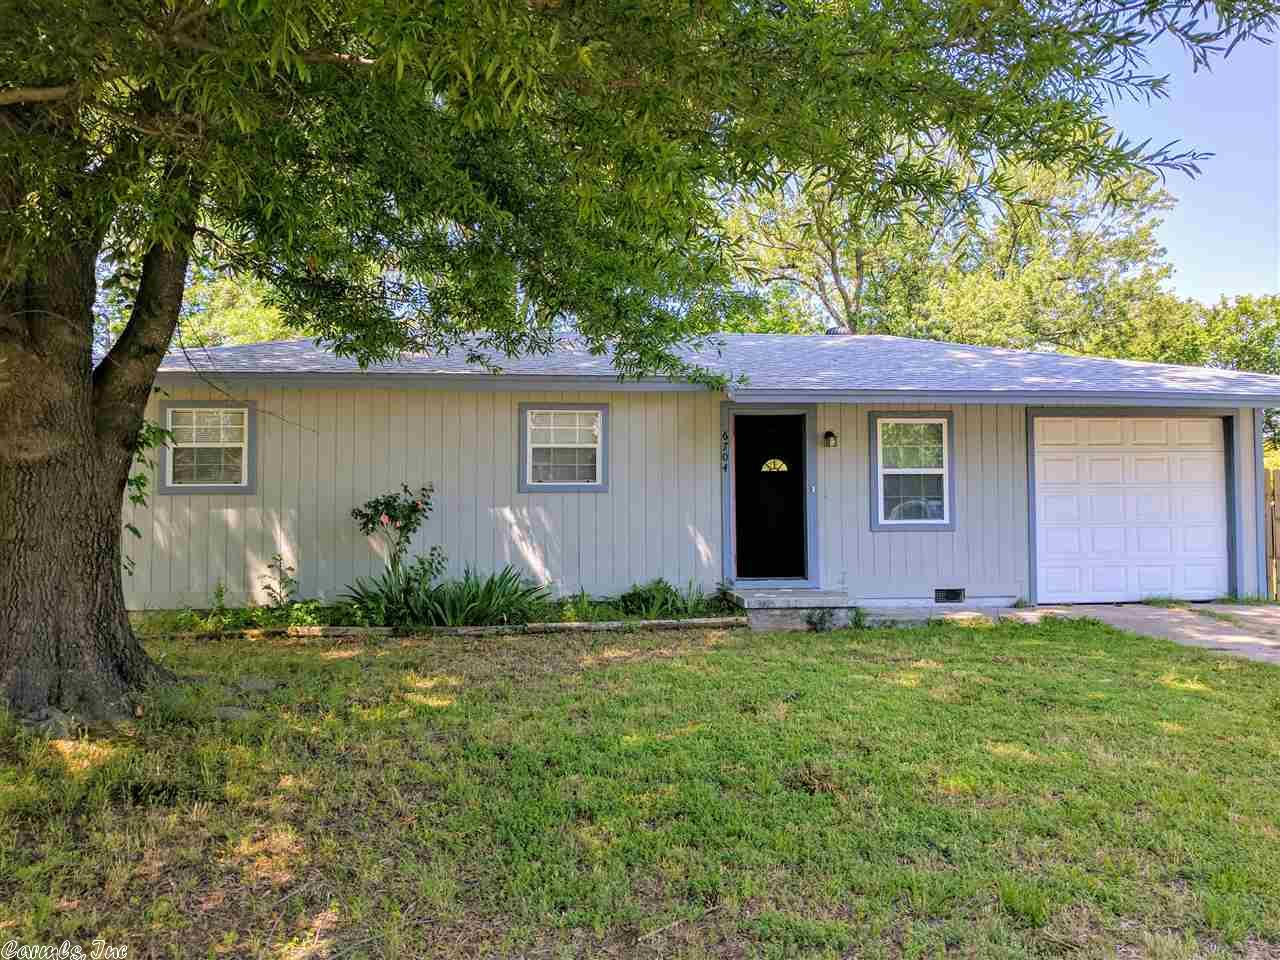 6704 Pecan Little Rock, AR 72201 - MLS #: 17014289